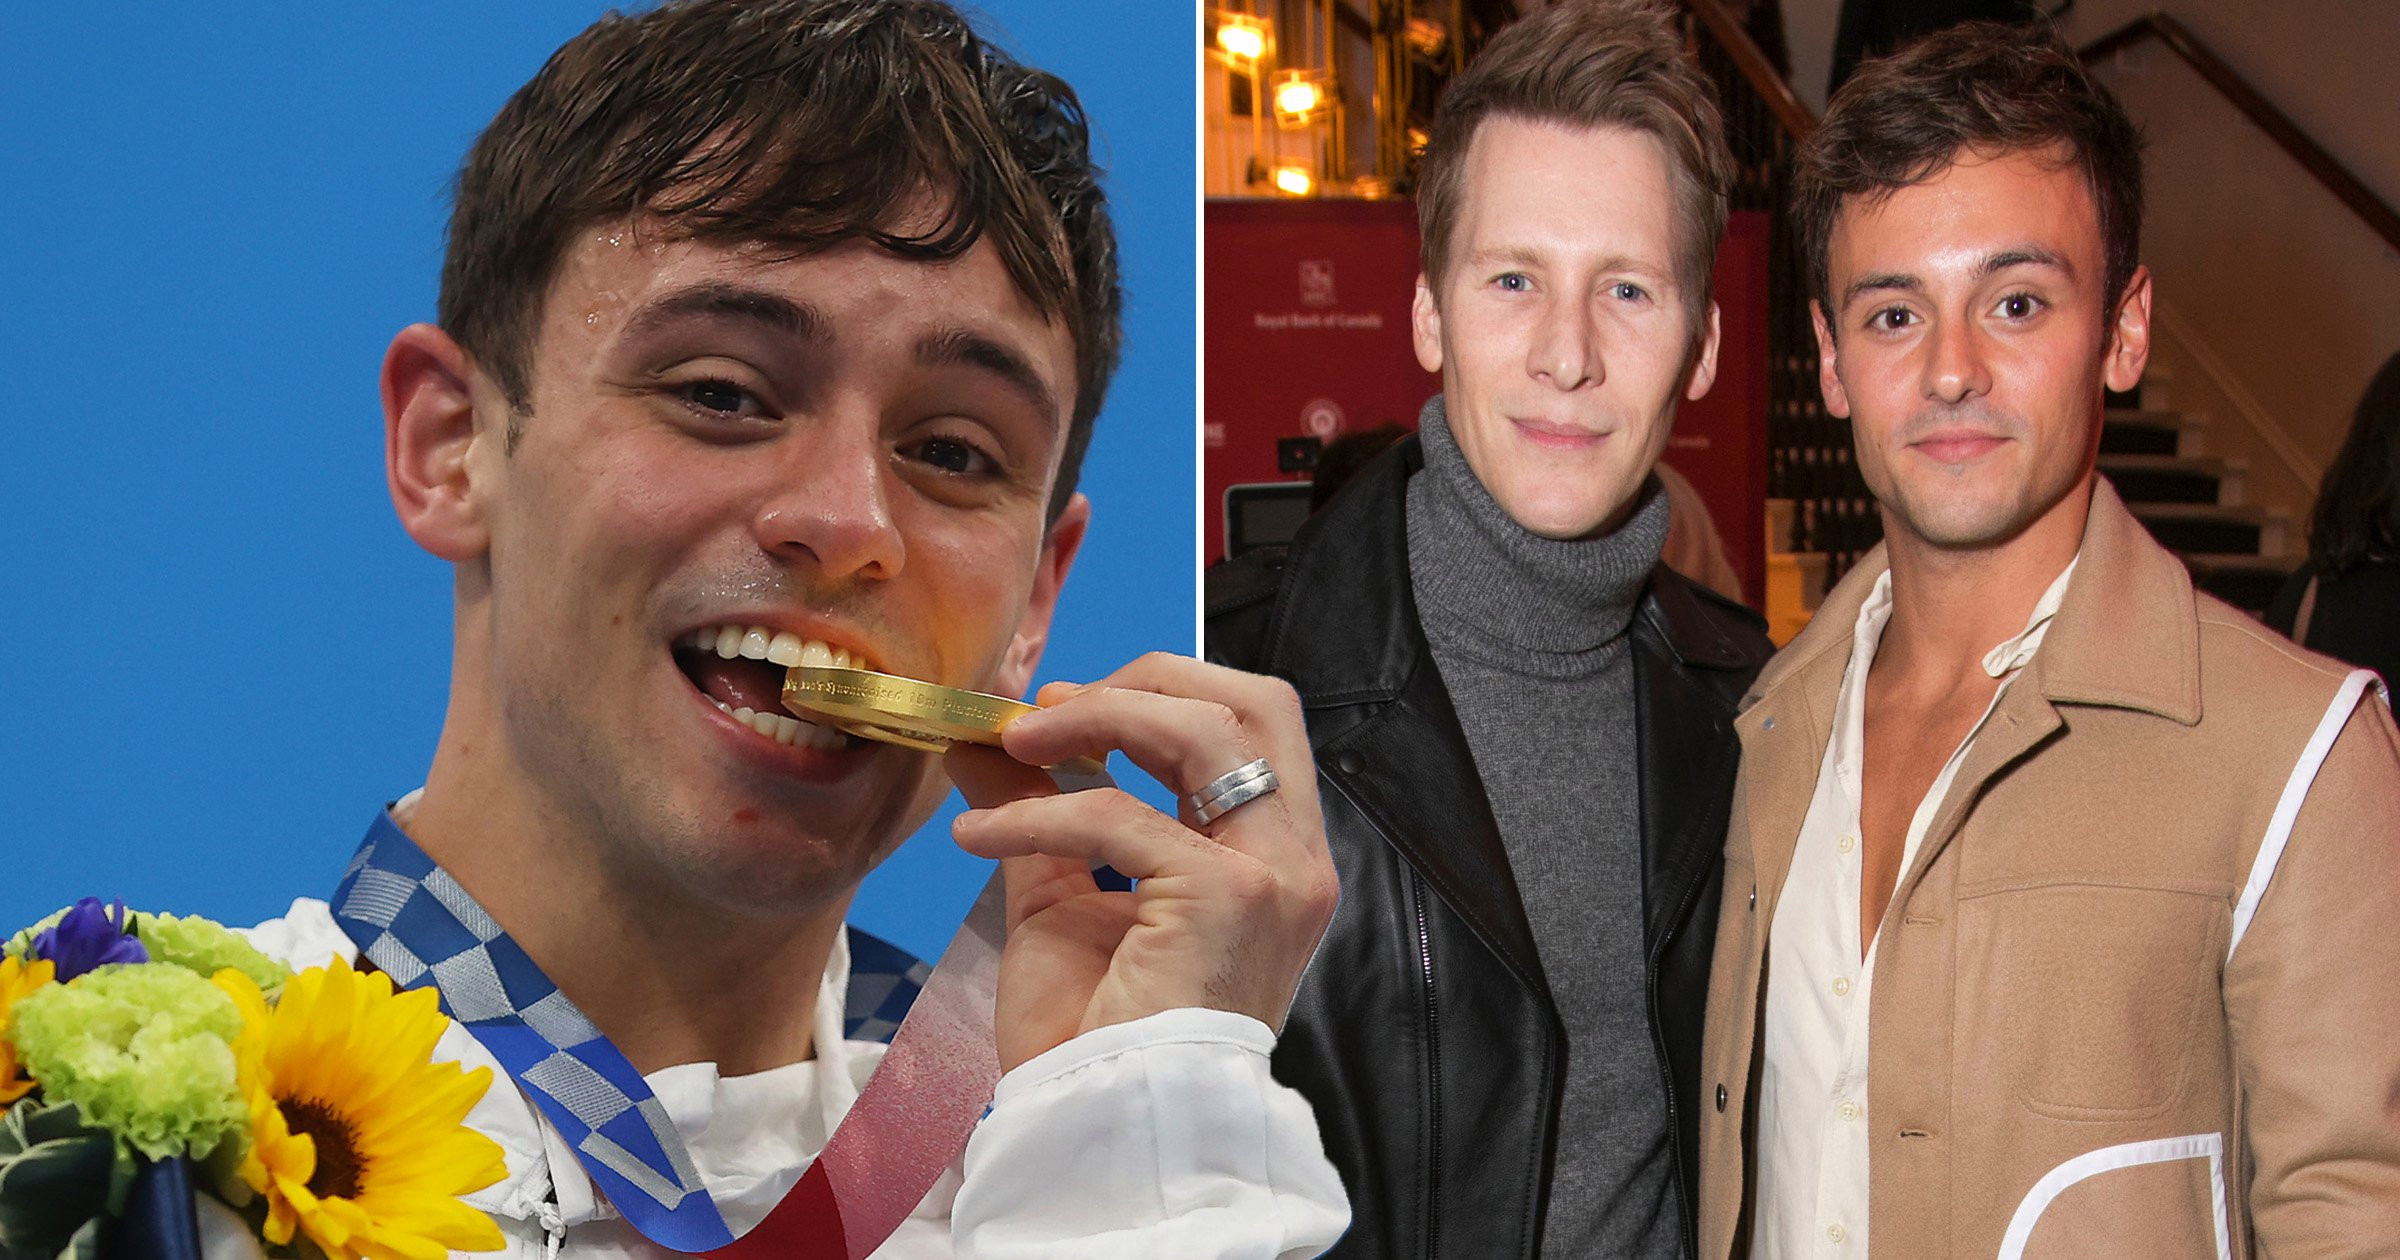 Tom Daley explores Canada with son Robbie as he reunites with family after Olympics glory